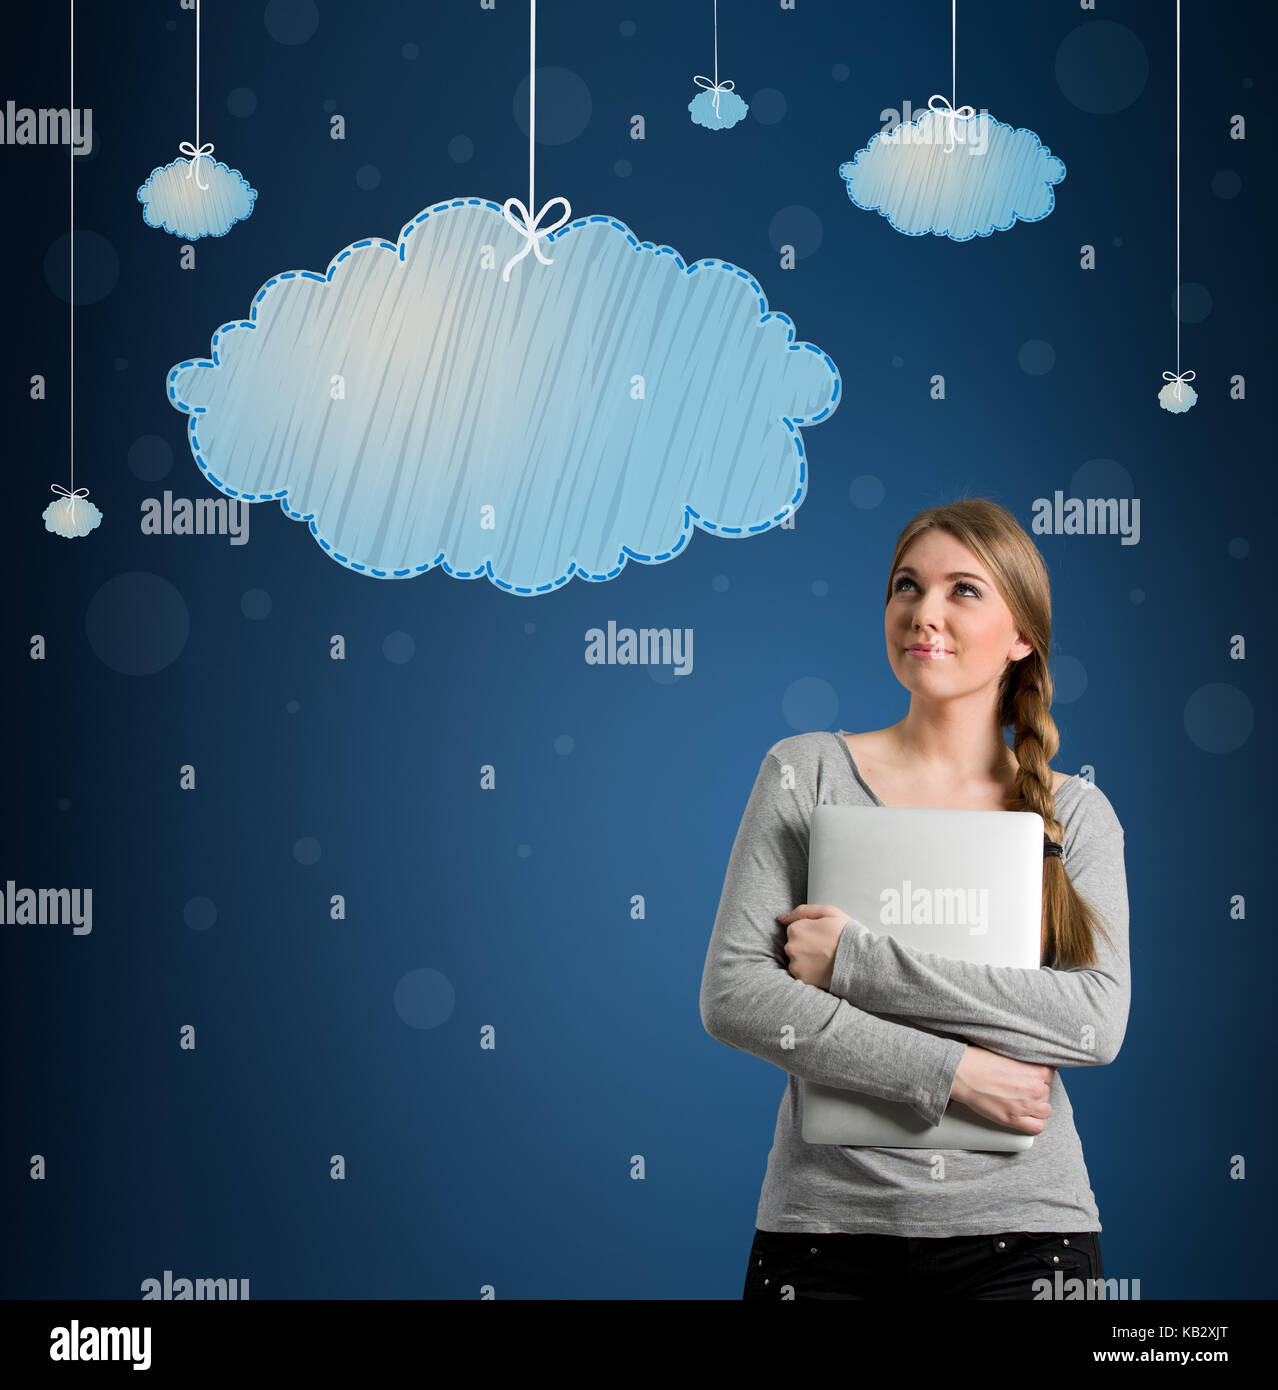 Beautiful young woman looking at hanging clouds, daydream - Stock Image